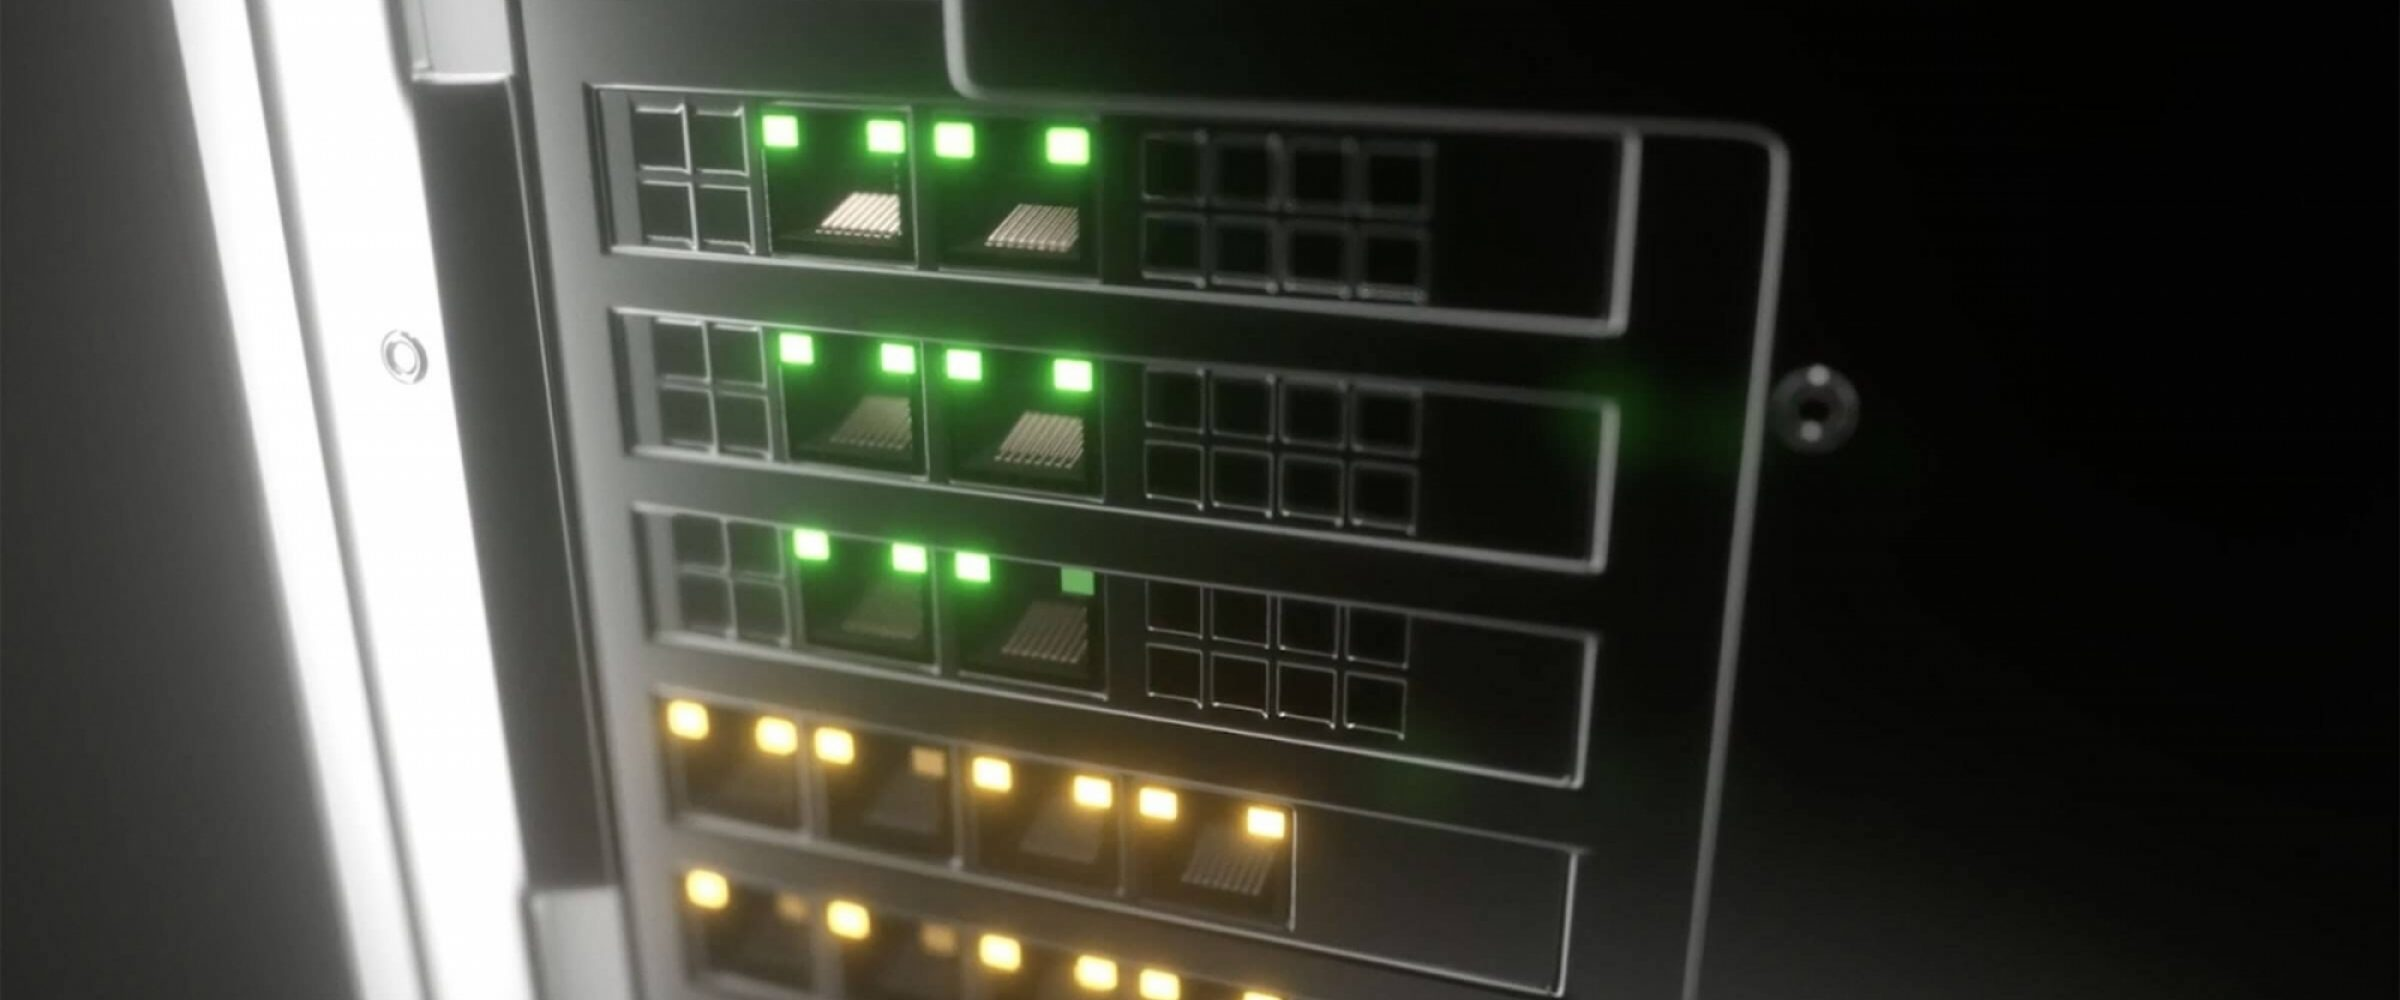 10GbE and 1GbE Ethernet Ports